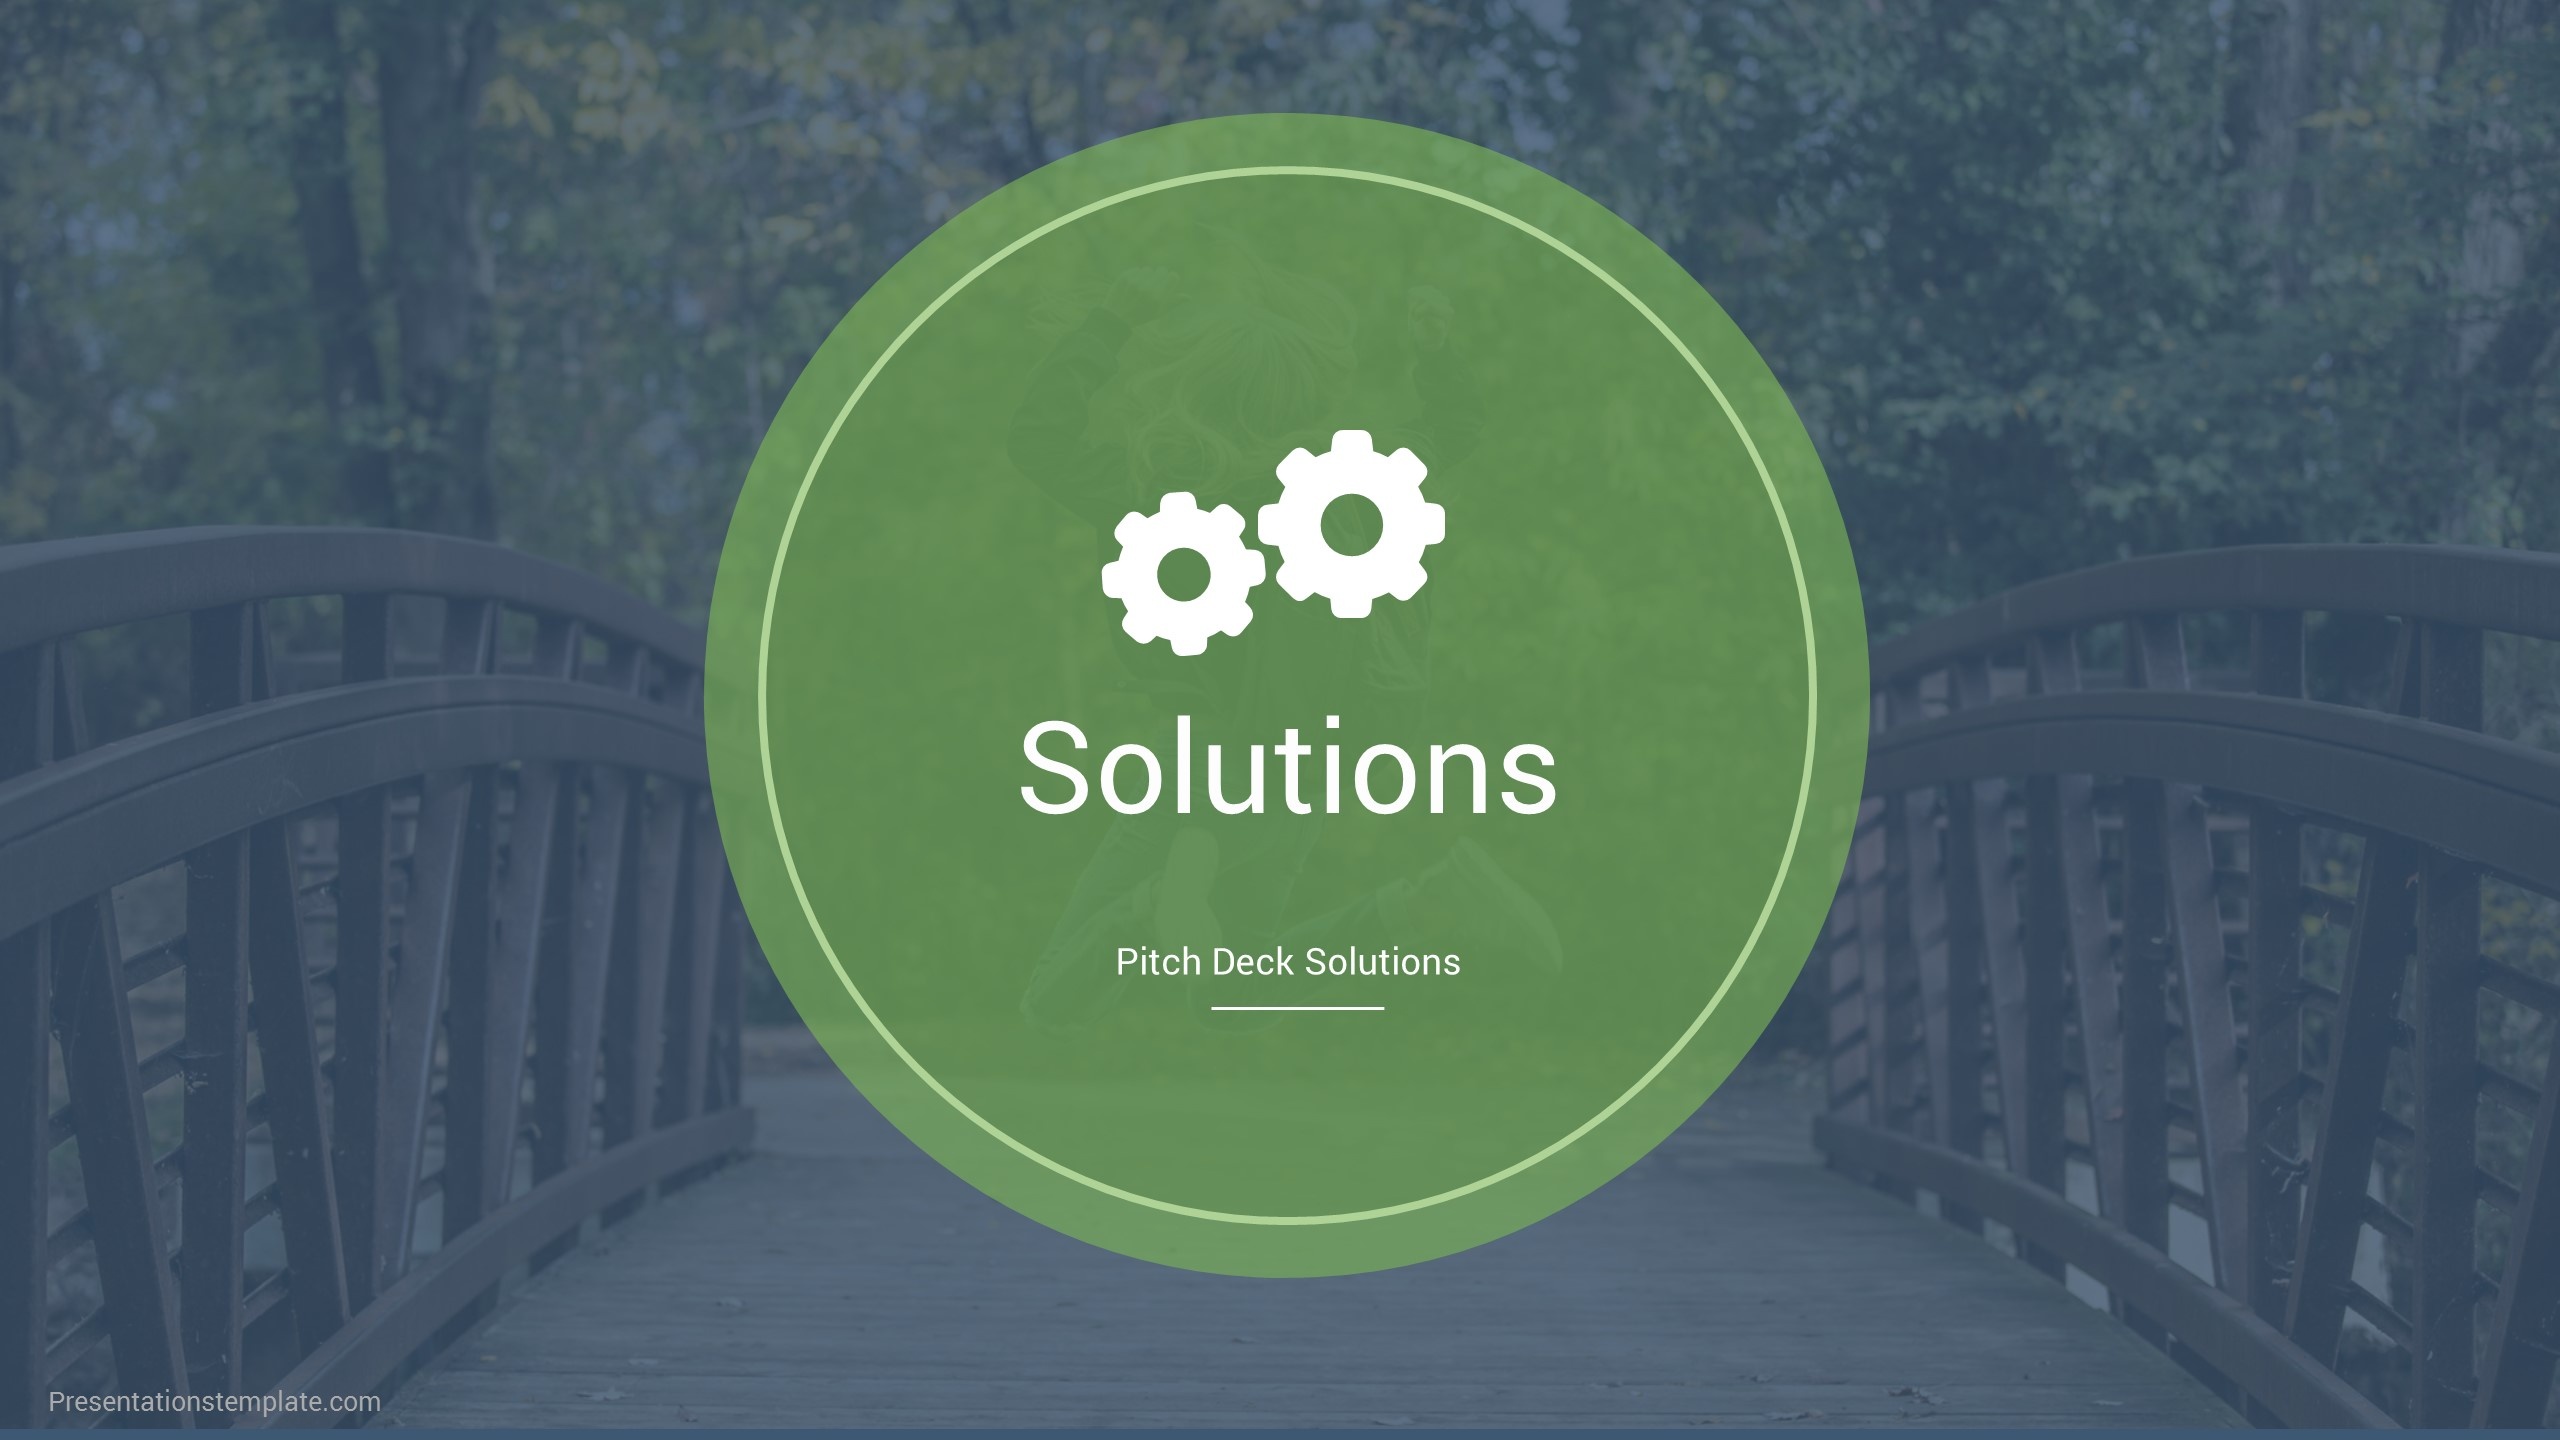 Pitch deck solution, business solution examples, pitch deck solution slide